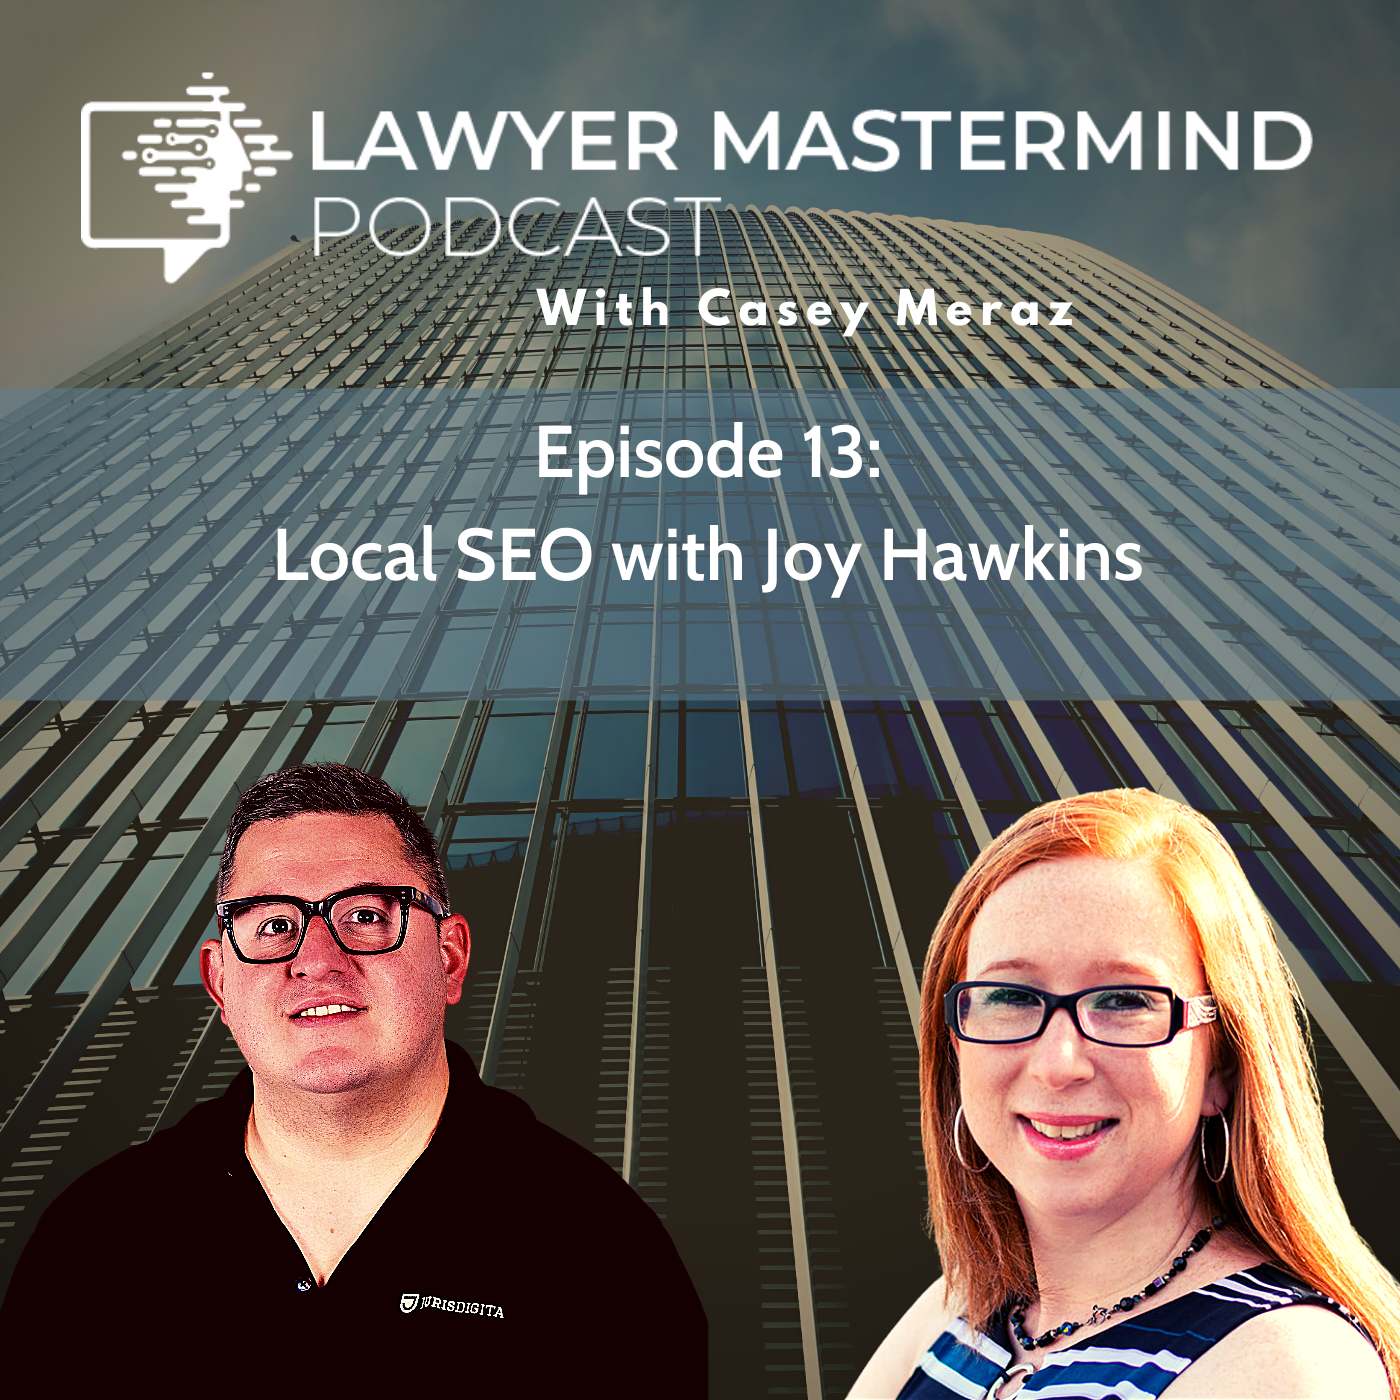 Lawyer Mastermind Podcast